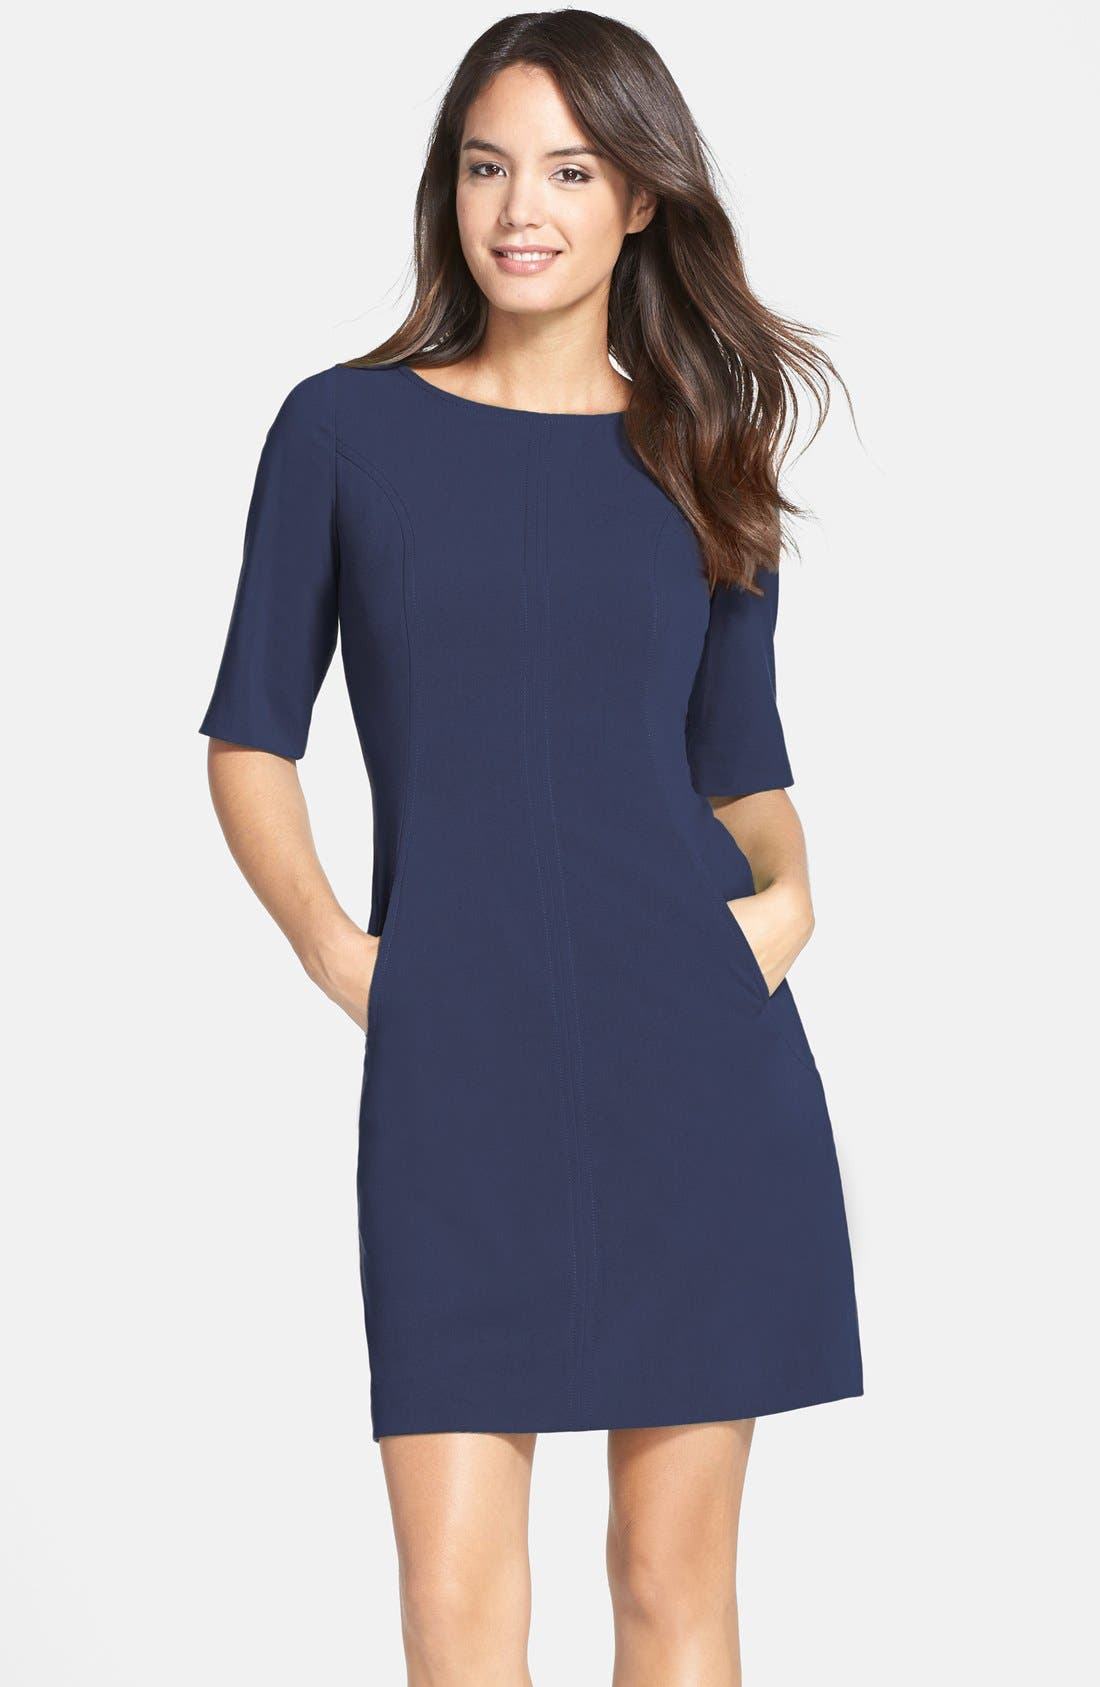 Alternate Image 1 Selected - Tahari Seamed A-Line Dress (Regular & Petite)